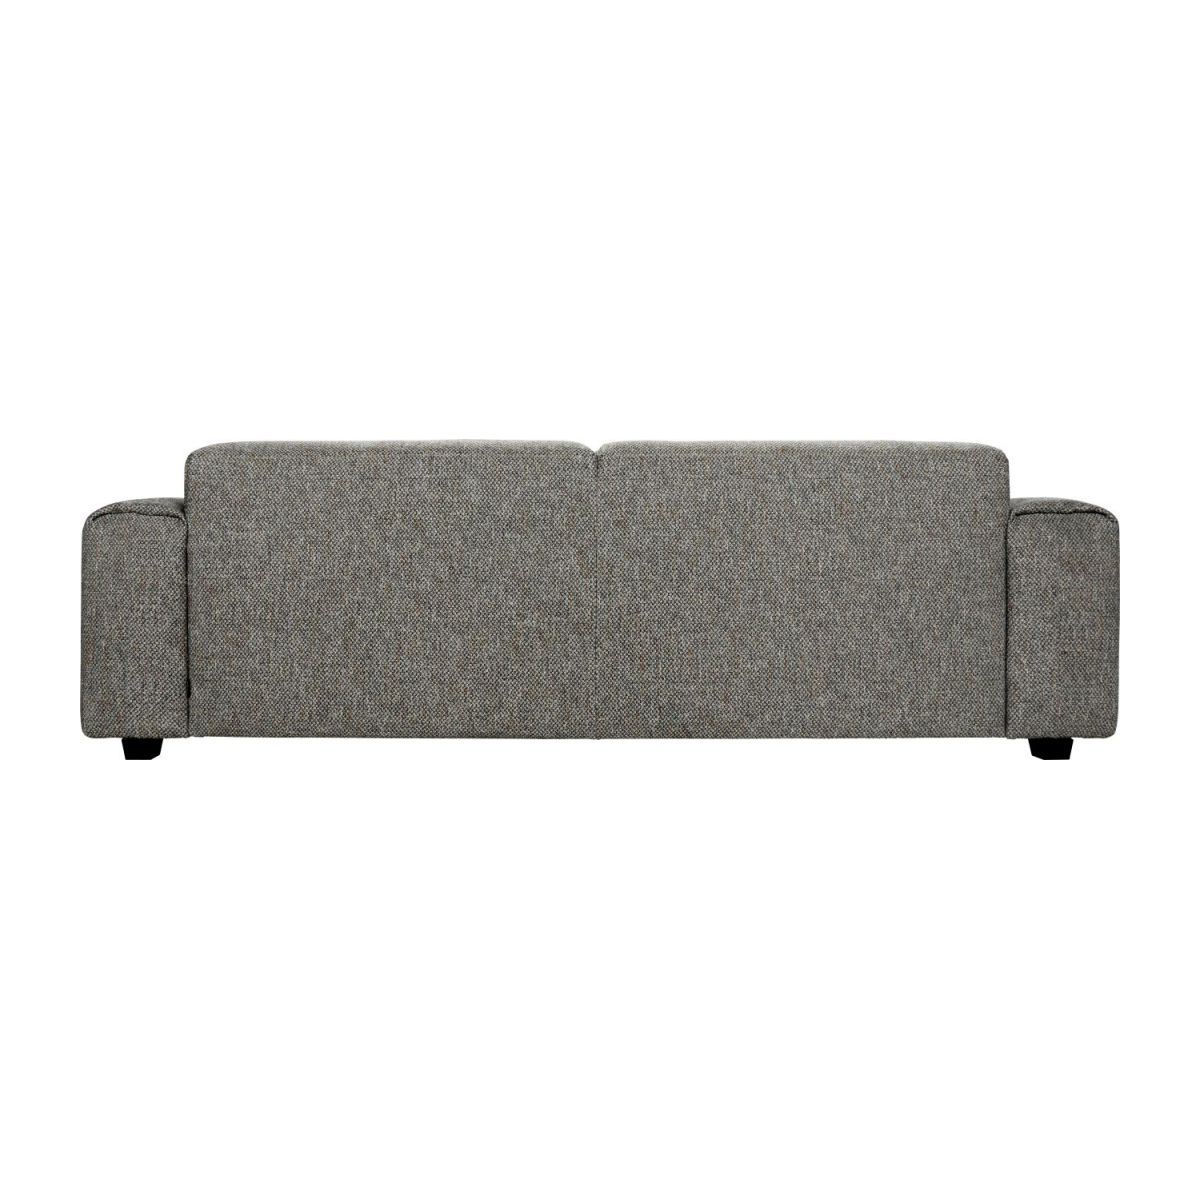 4-seter sofa, sort n°6